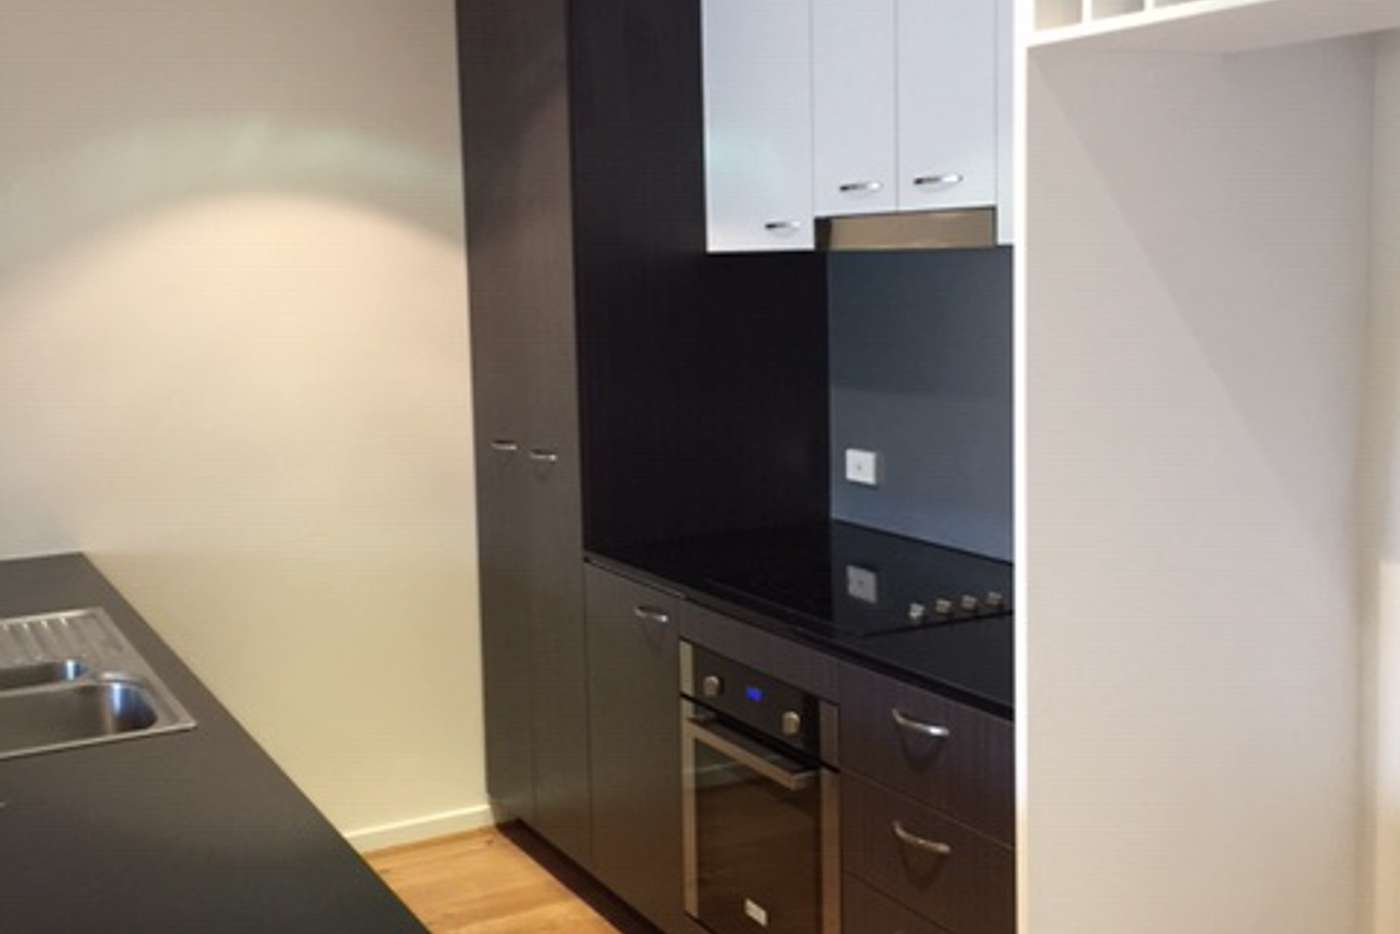 Main view of Homely apartment listing, 401/109 Manningham Street, Parkville VIC 3052